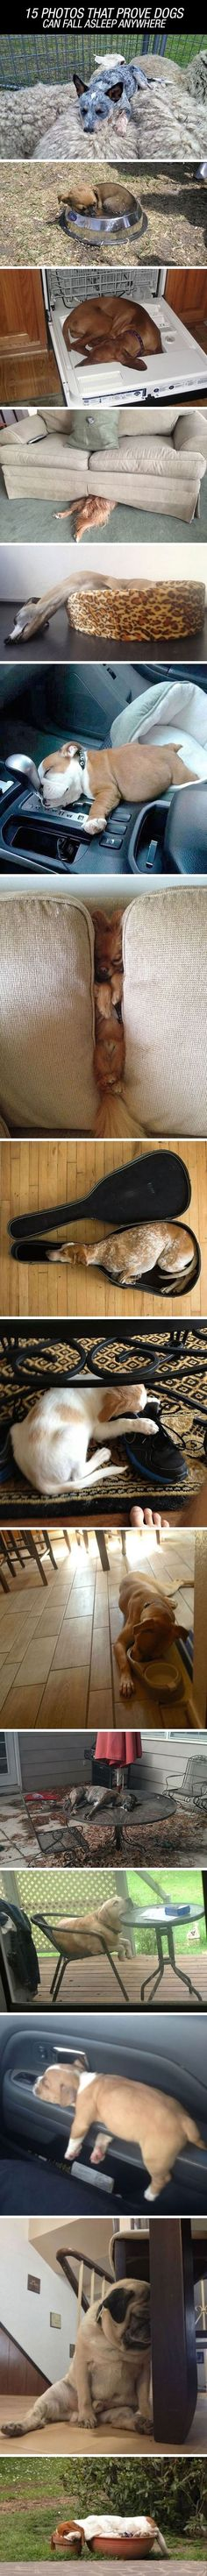 15 Photos that Prove Dogs Can Fall Asleep Anywhere cute animals dogs adorable sleep dog puppy animal pets lol humor funny pictures funny animals funny pets funny dogs Cute Funny Animals, Funny Animal Pictures, Funny Dogs, Funny Memes, Funny Sleep, Dog Pictures, Funny Quotes, Hilarious, Cute Puppies